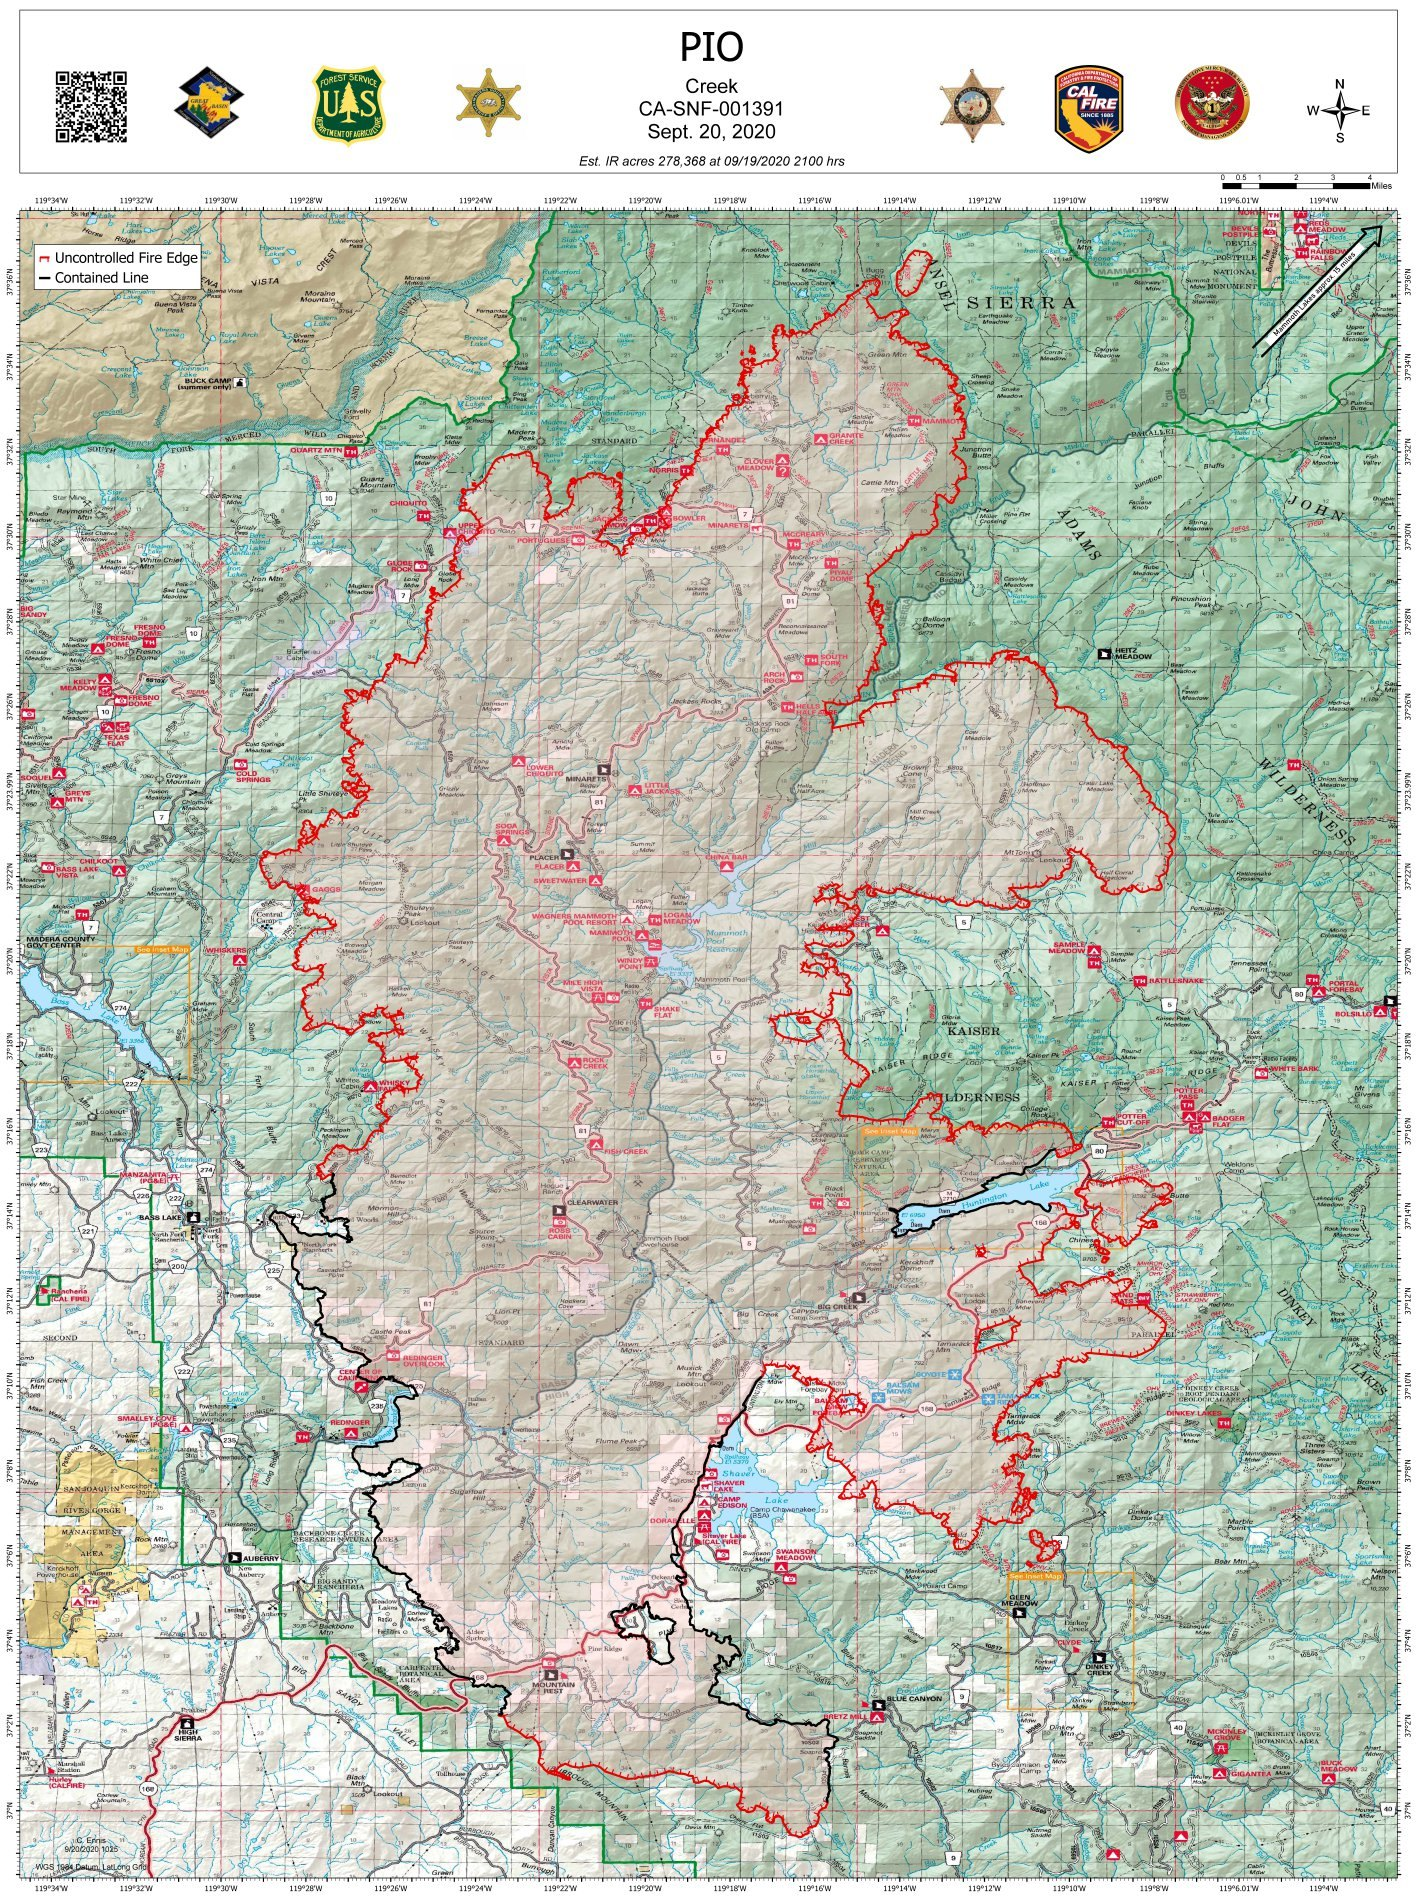 Creek Fire update 9/20